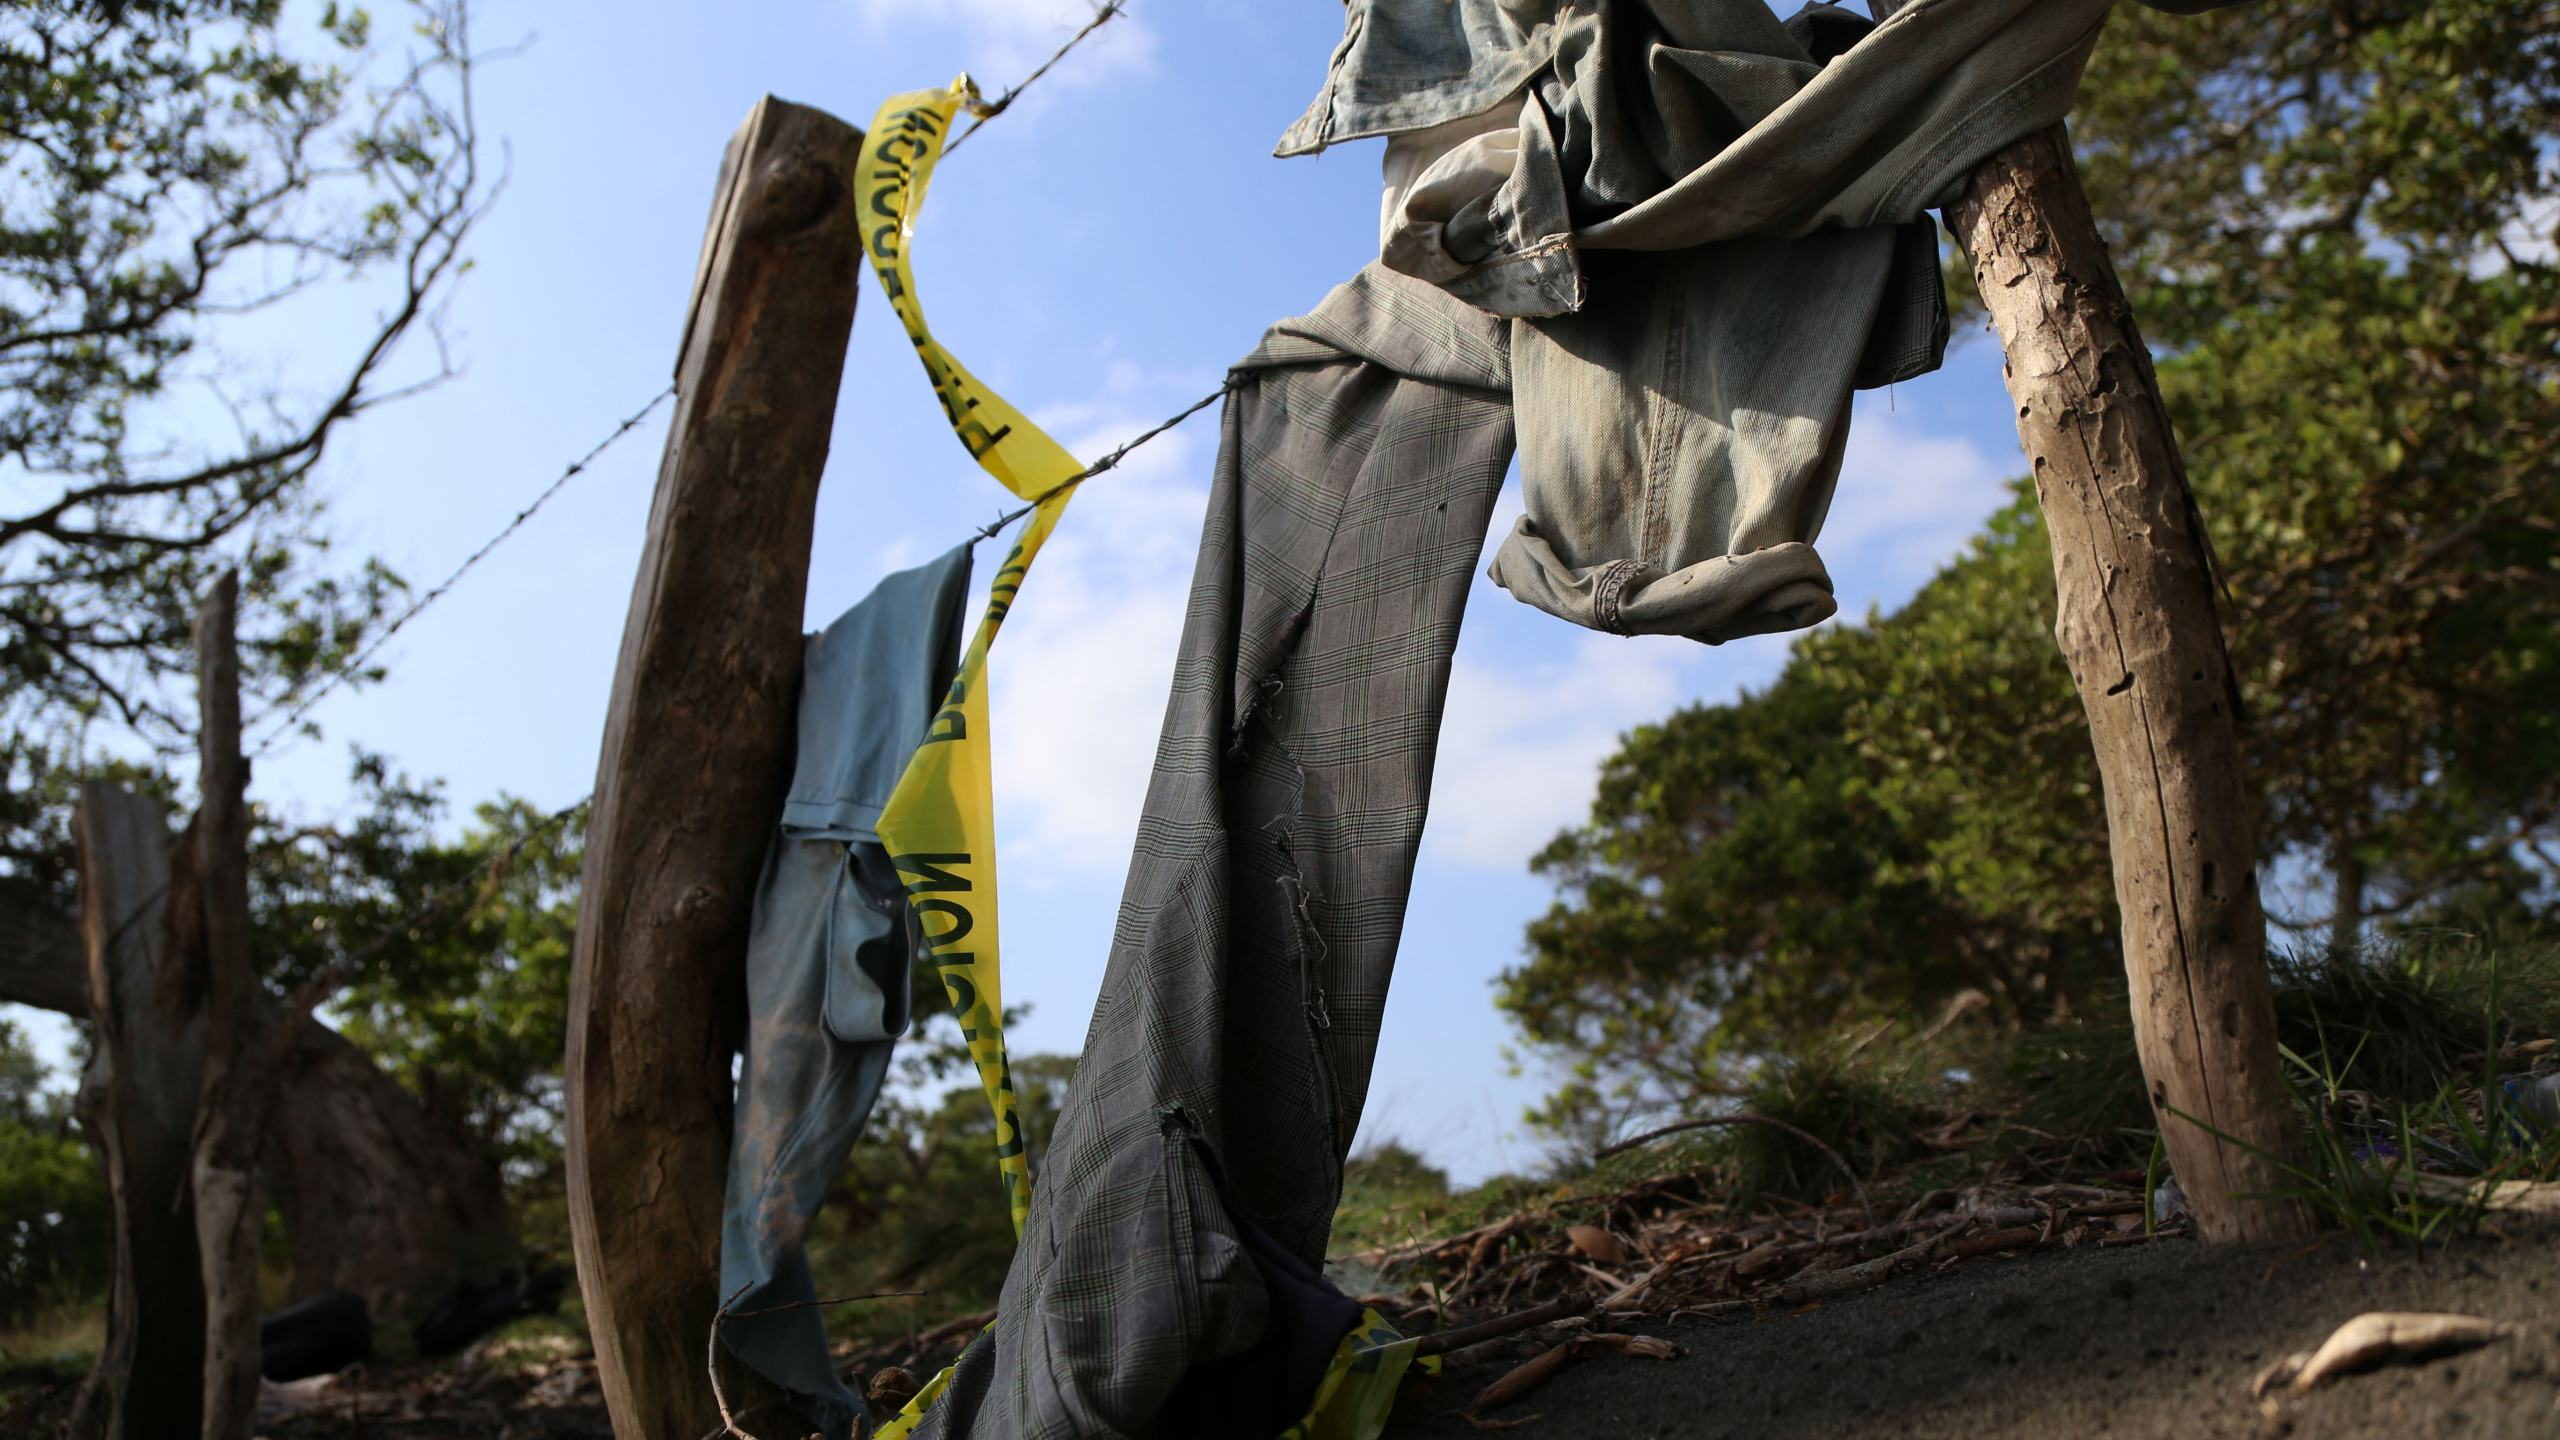 Clothing is seen on March 19, 2017, around a mass grave where 12 bodies were exhumed by the Mexican authorities in Alvarado, Veracruz state. (Credit: Ilse Huesca / AFP / Getty Images)